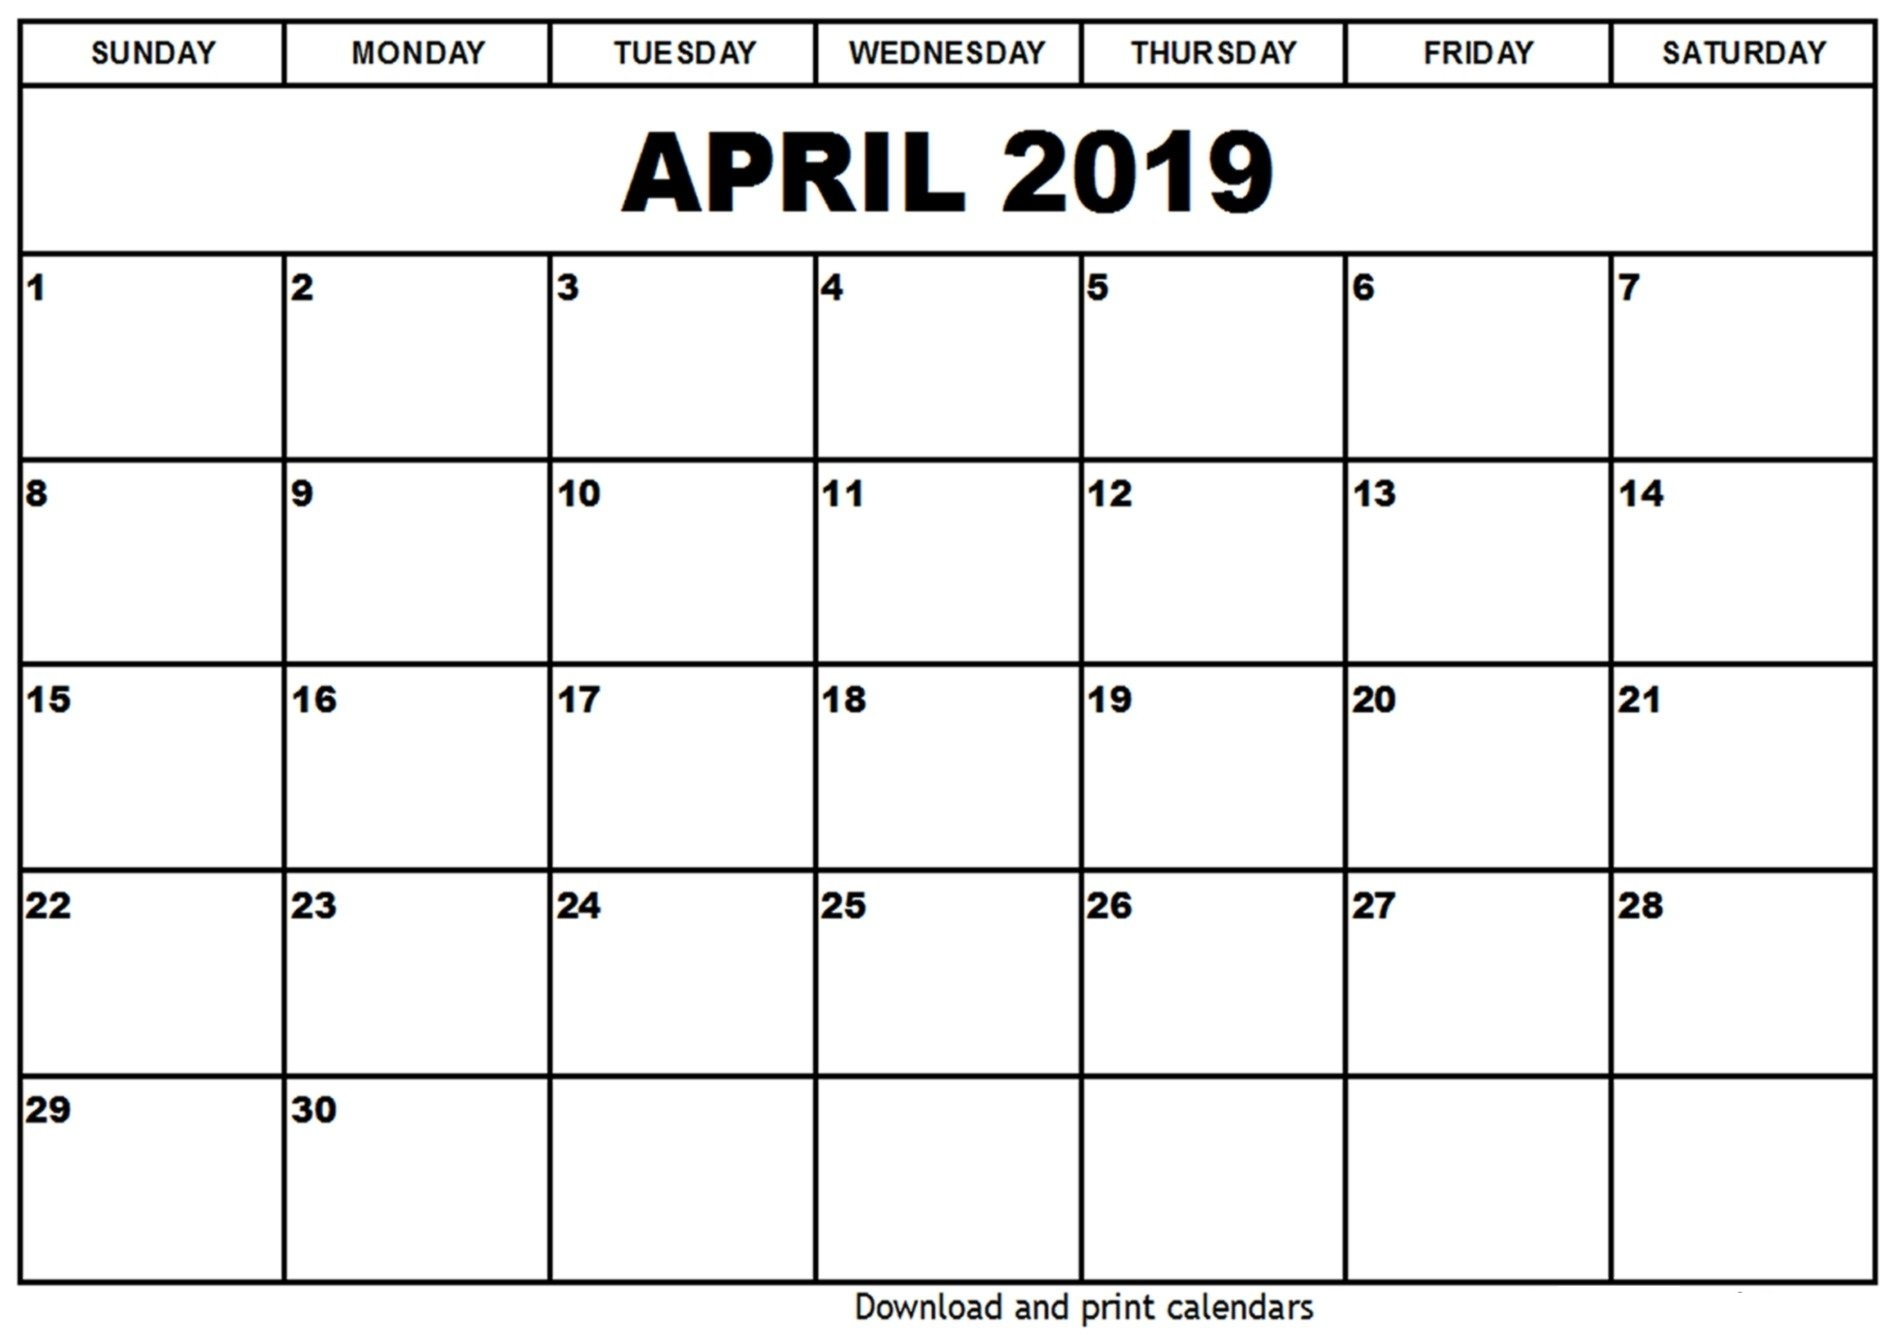 April 2019 Holiday Calendar Download – April 2019 Calendar Printable Download A Calendar 2019